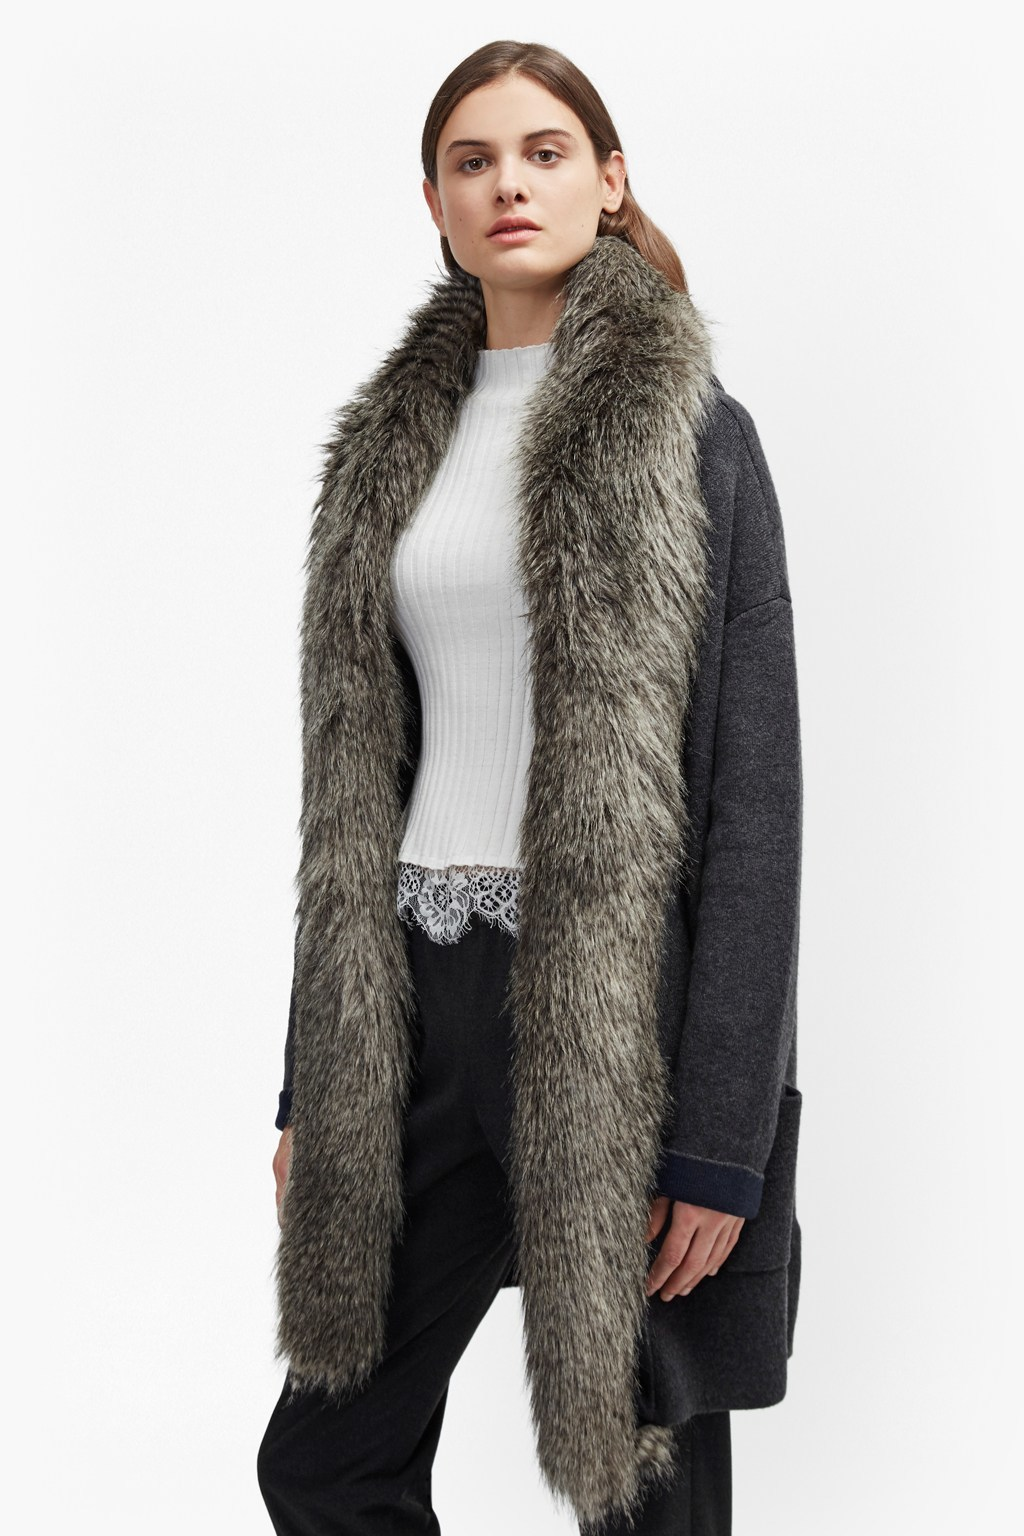 Double Sided Faux Fur Vhari Coatigan Charcoal Mel/Nocturnal - pattern: plain; fit: loose; style: poncho/blanket; length: on the knee; predominant colour: black; occasions: casual; fibres: cotton - mix; sleeve length: long sleeve; sleeve style: standard; texture group: knits/crochet; collar: fur; collar break: low/open; pattern type: knitted - fine stitch; season: a/w 2016; wardrobe: highlight